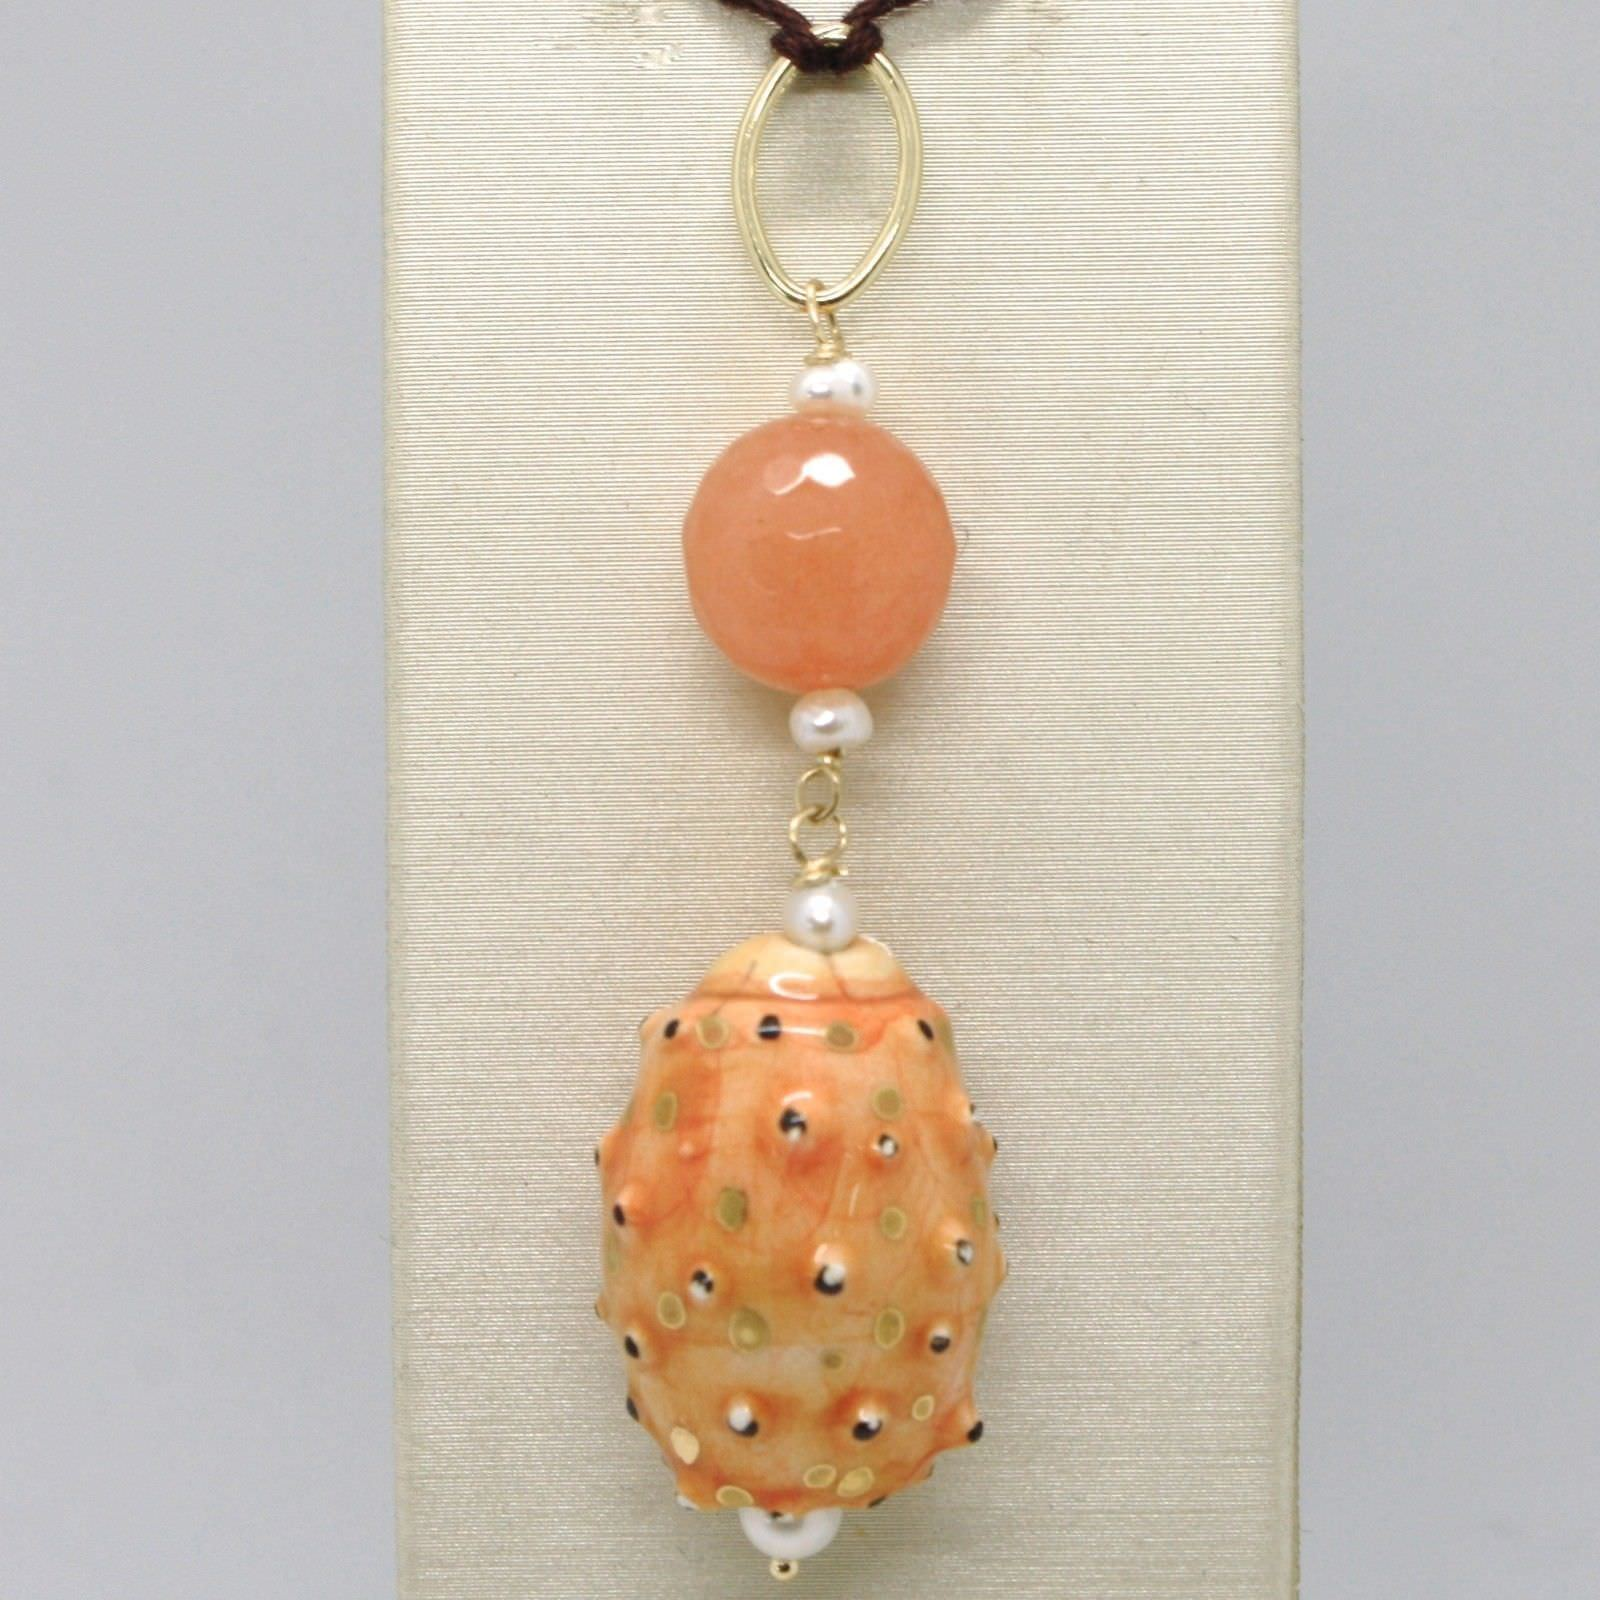 PENDANT YELLOW GOLD 18K 750 QUARTZ PEARLS AND CERAMICS PAINTED MADE IN ITALY